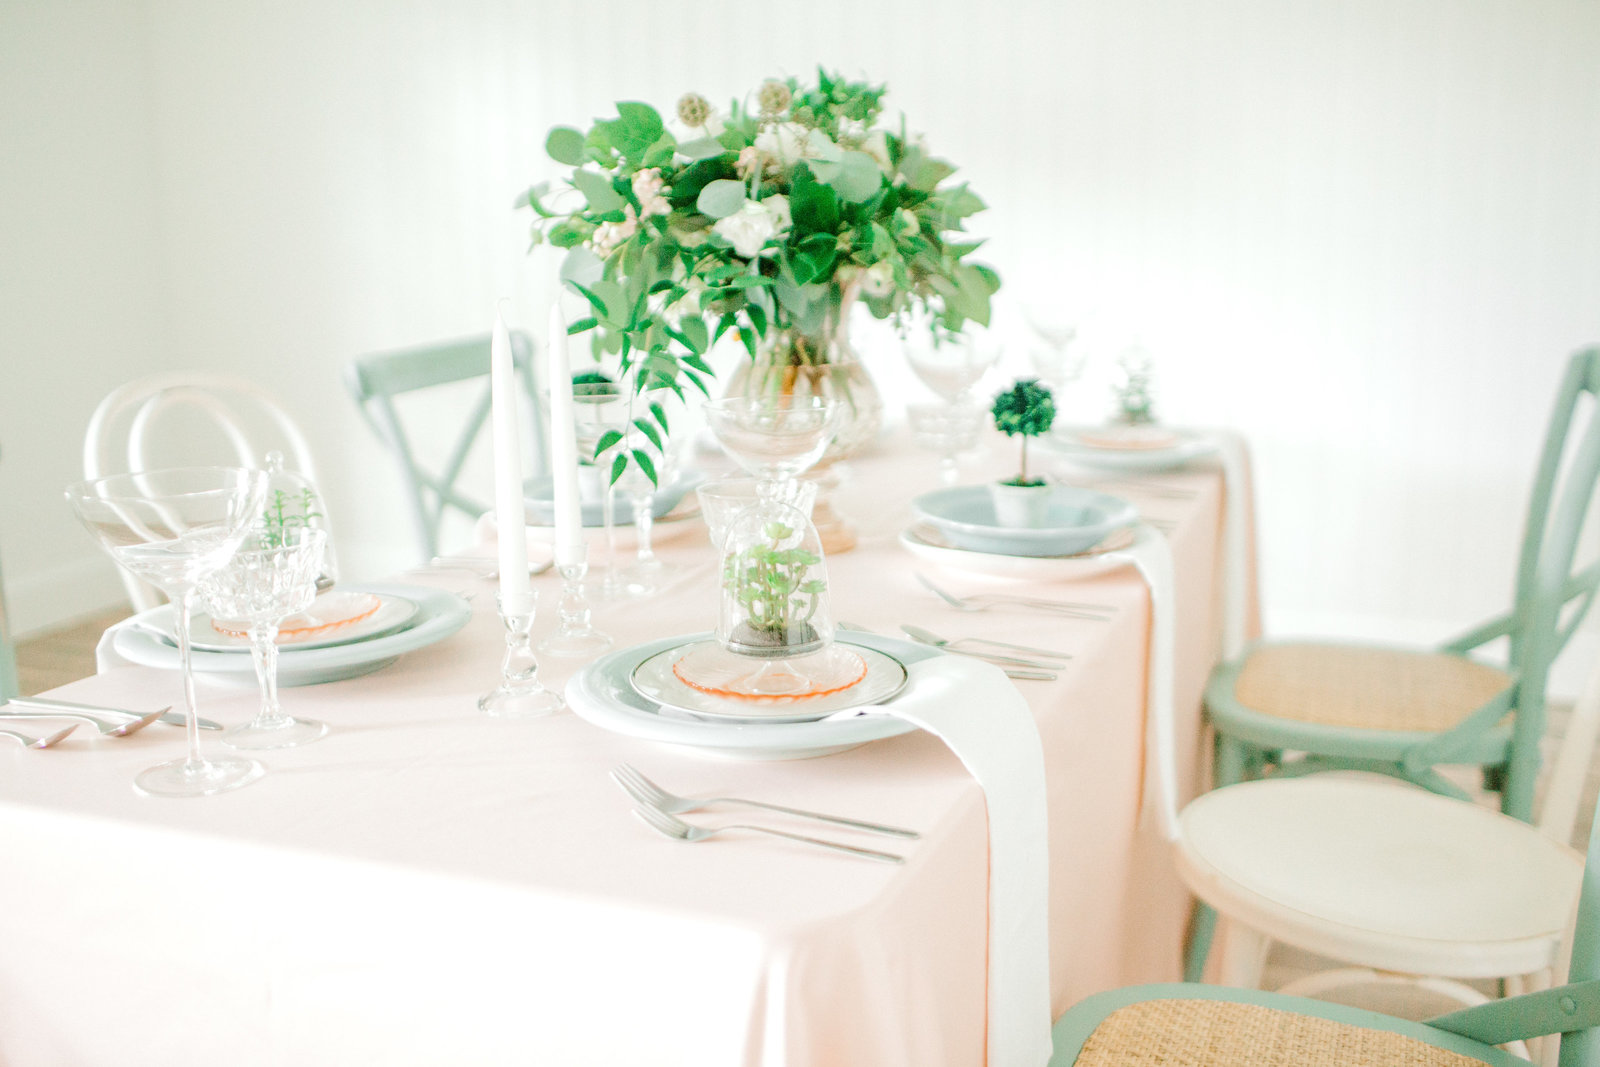 Ava Loren Design Kamesha Richard Fine Art Soft Pastel Table Design Florals Andrew & Tianna Photography-10